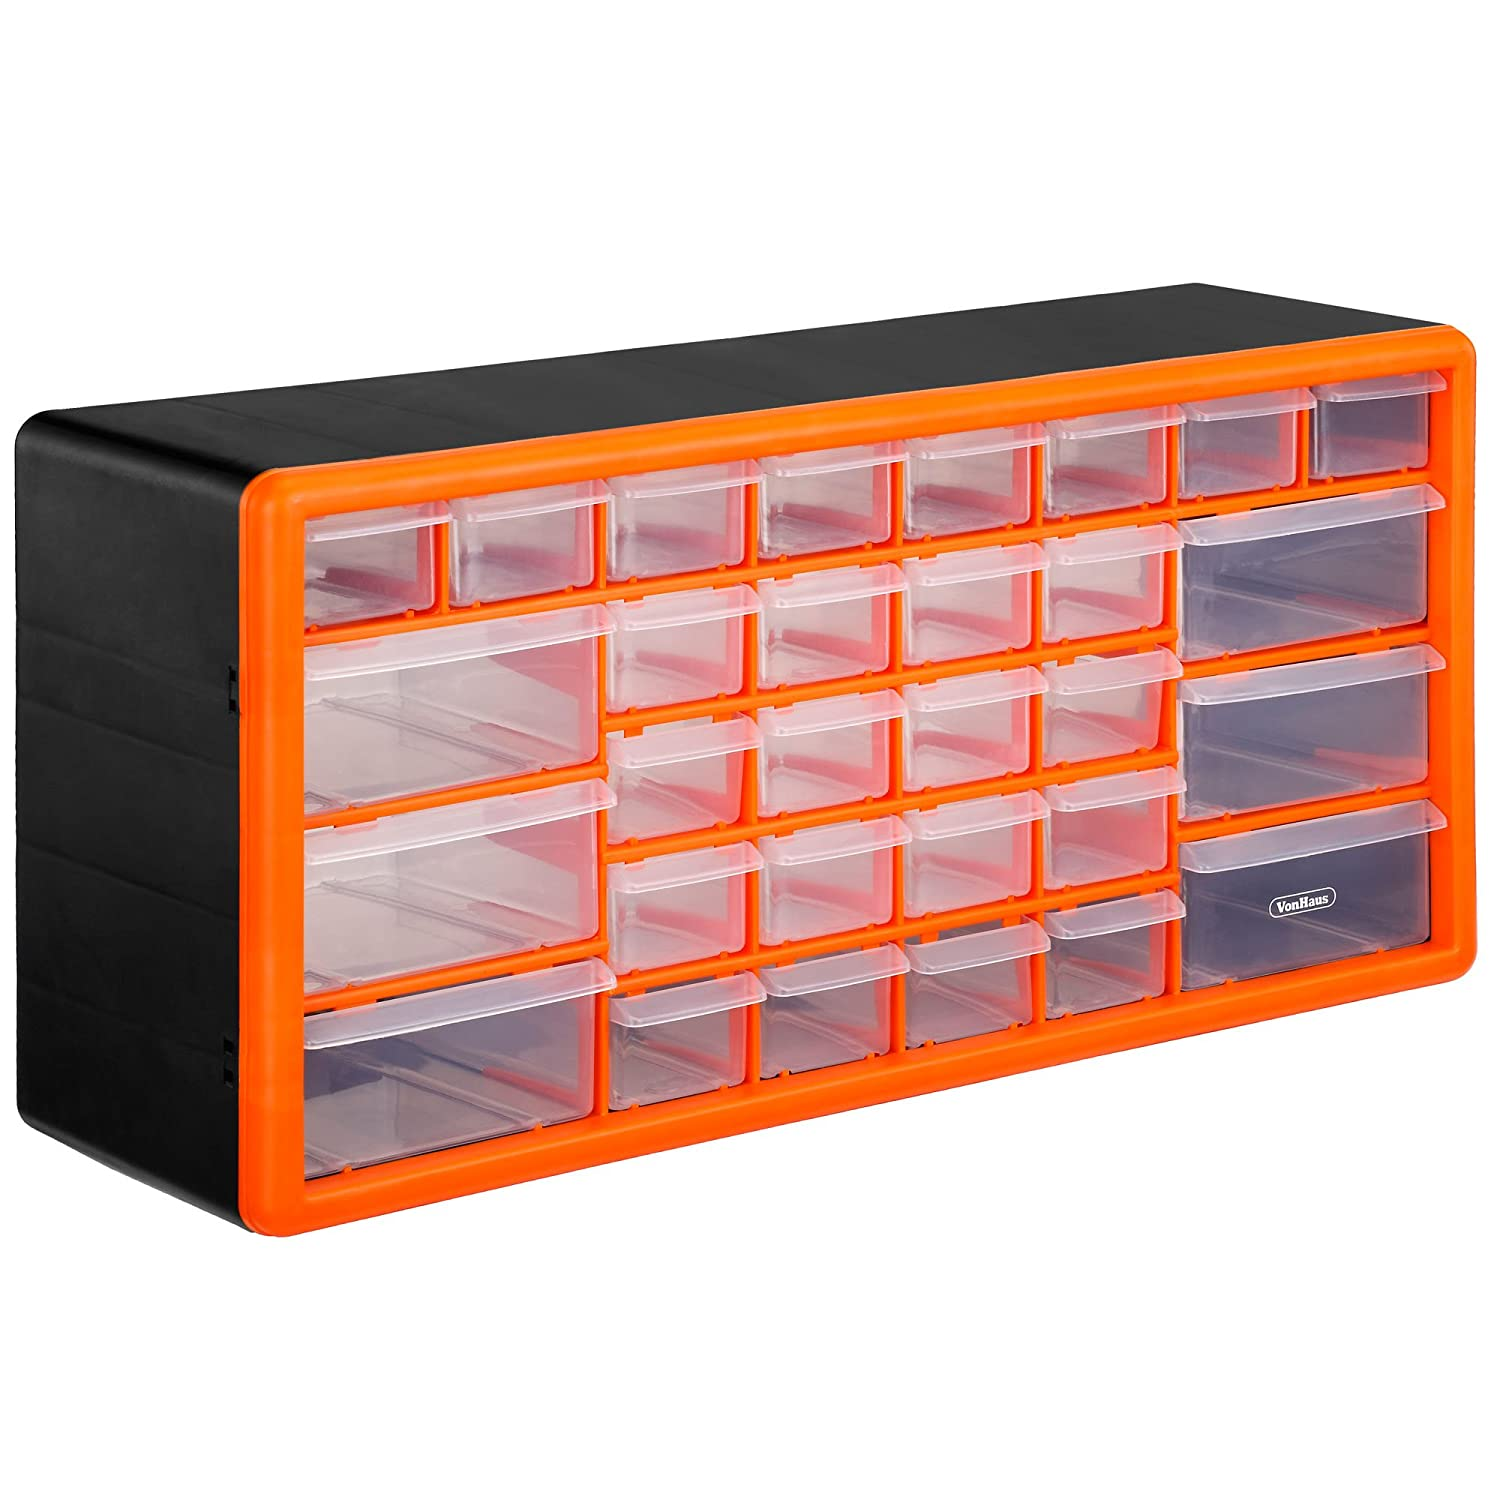 VonHaus 30 Drawer Parts Storage Organiser Cabinet Amazon